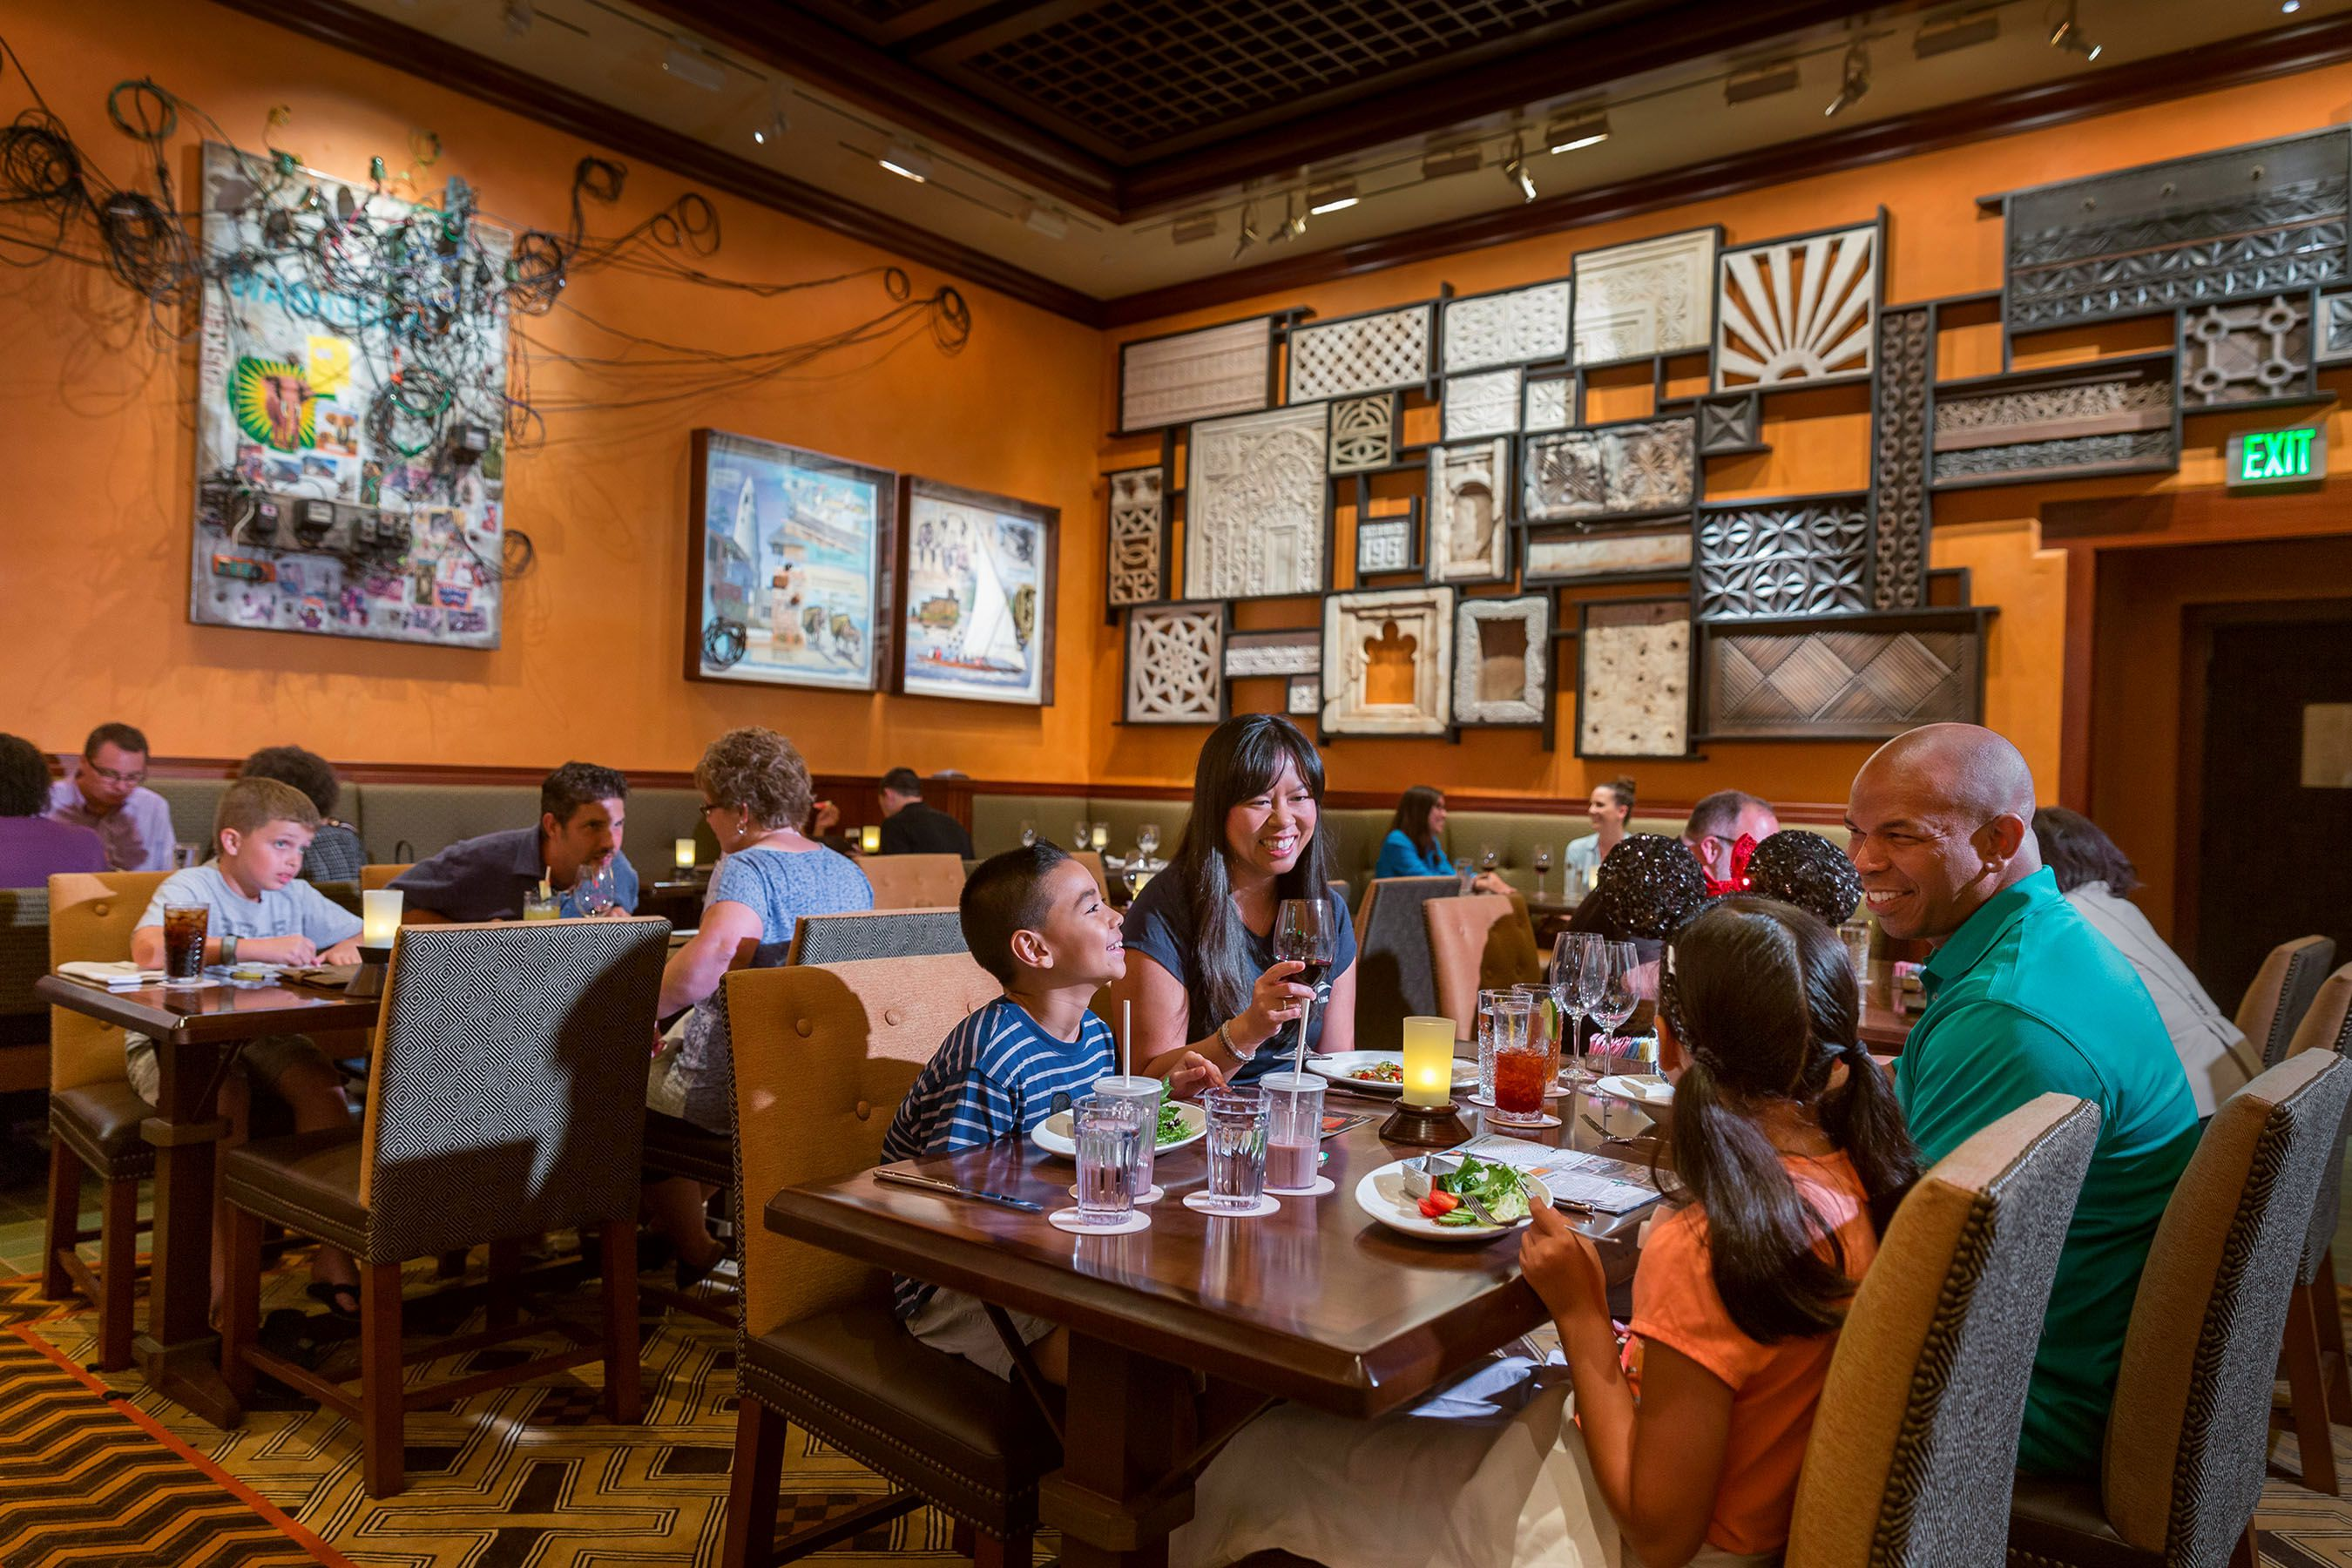 The Top TableService Restaurants At Disney World - Magic kingdom table service restaurants